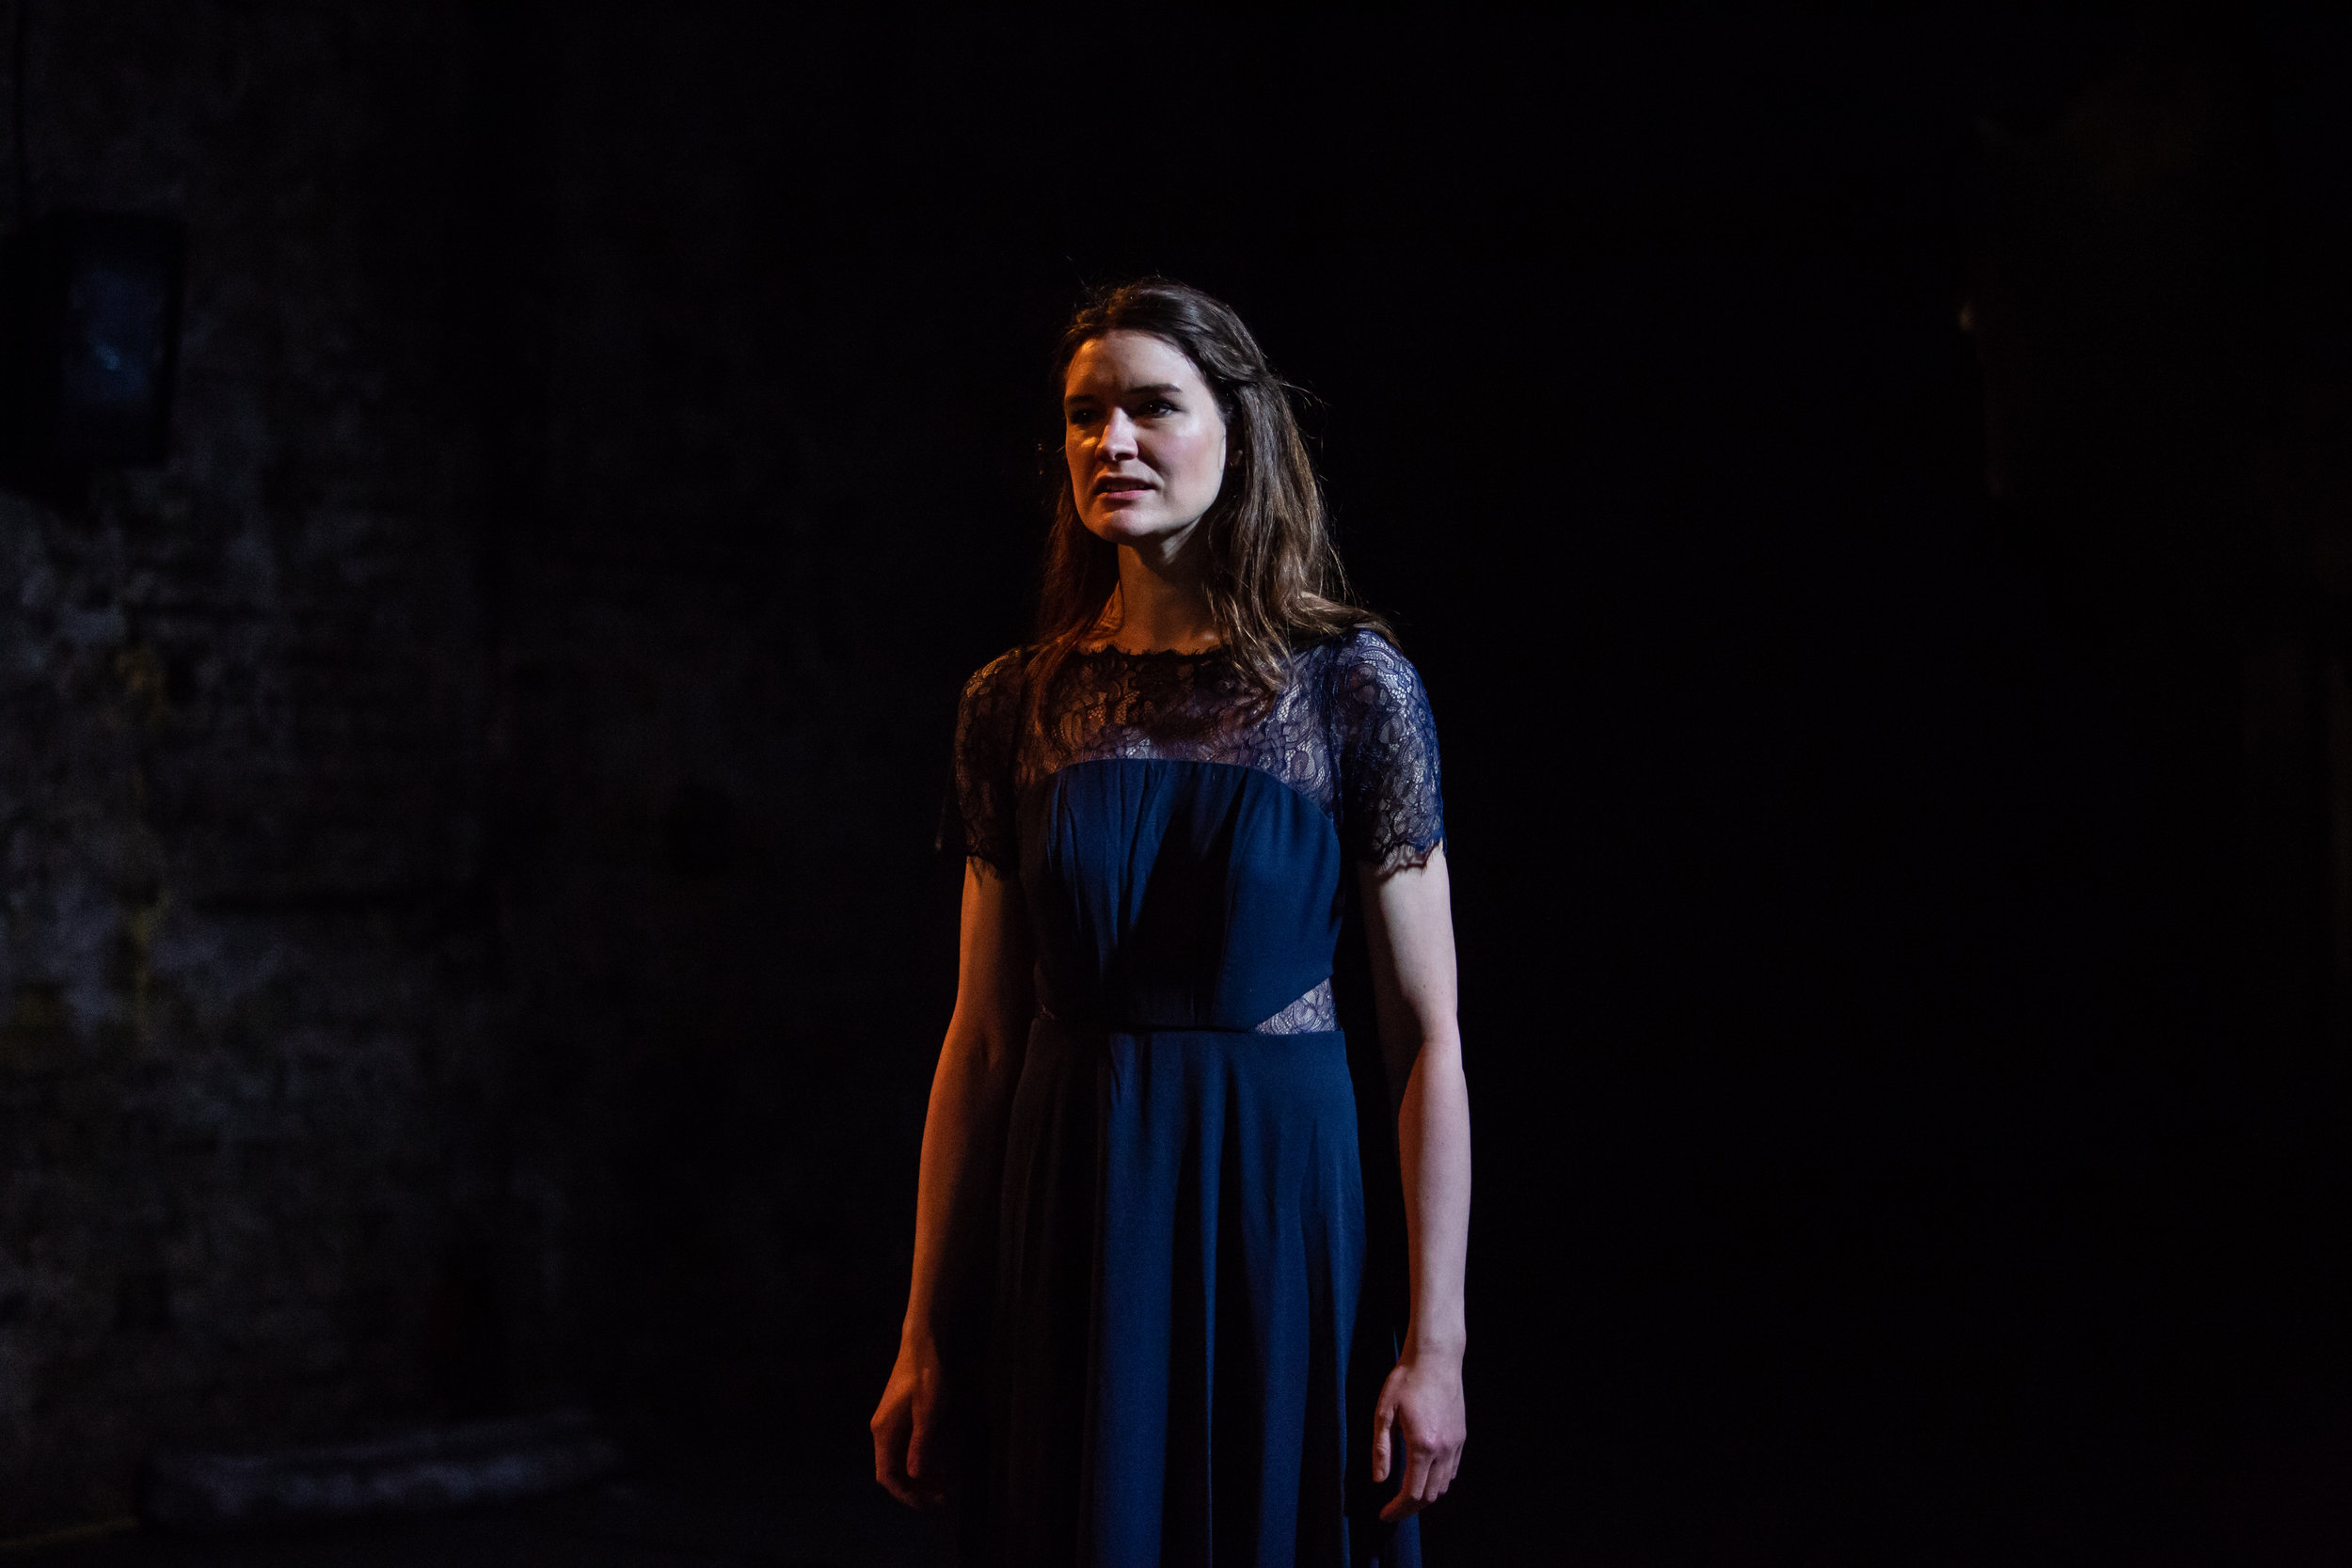 10 Production Images - Ali Wright-4.jpg